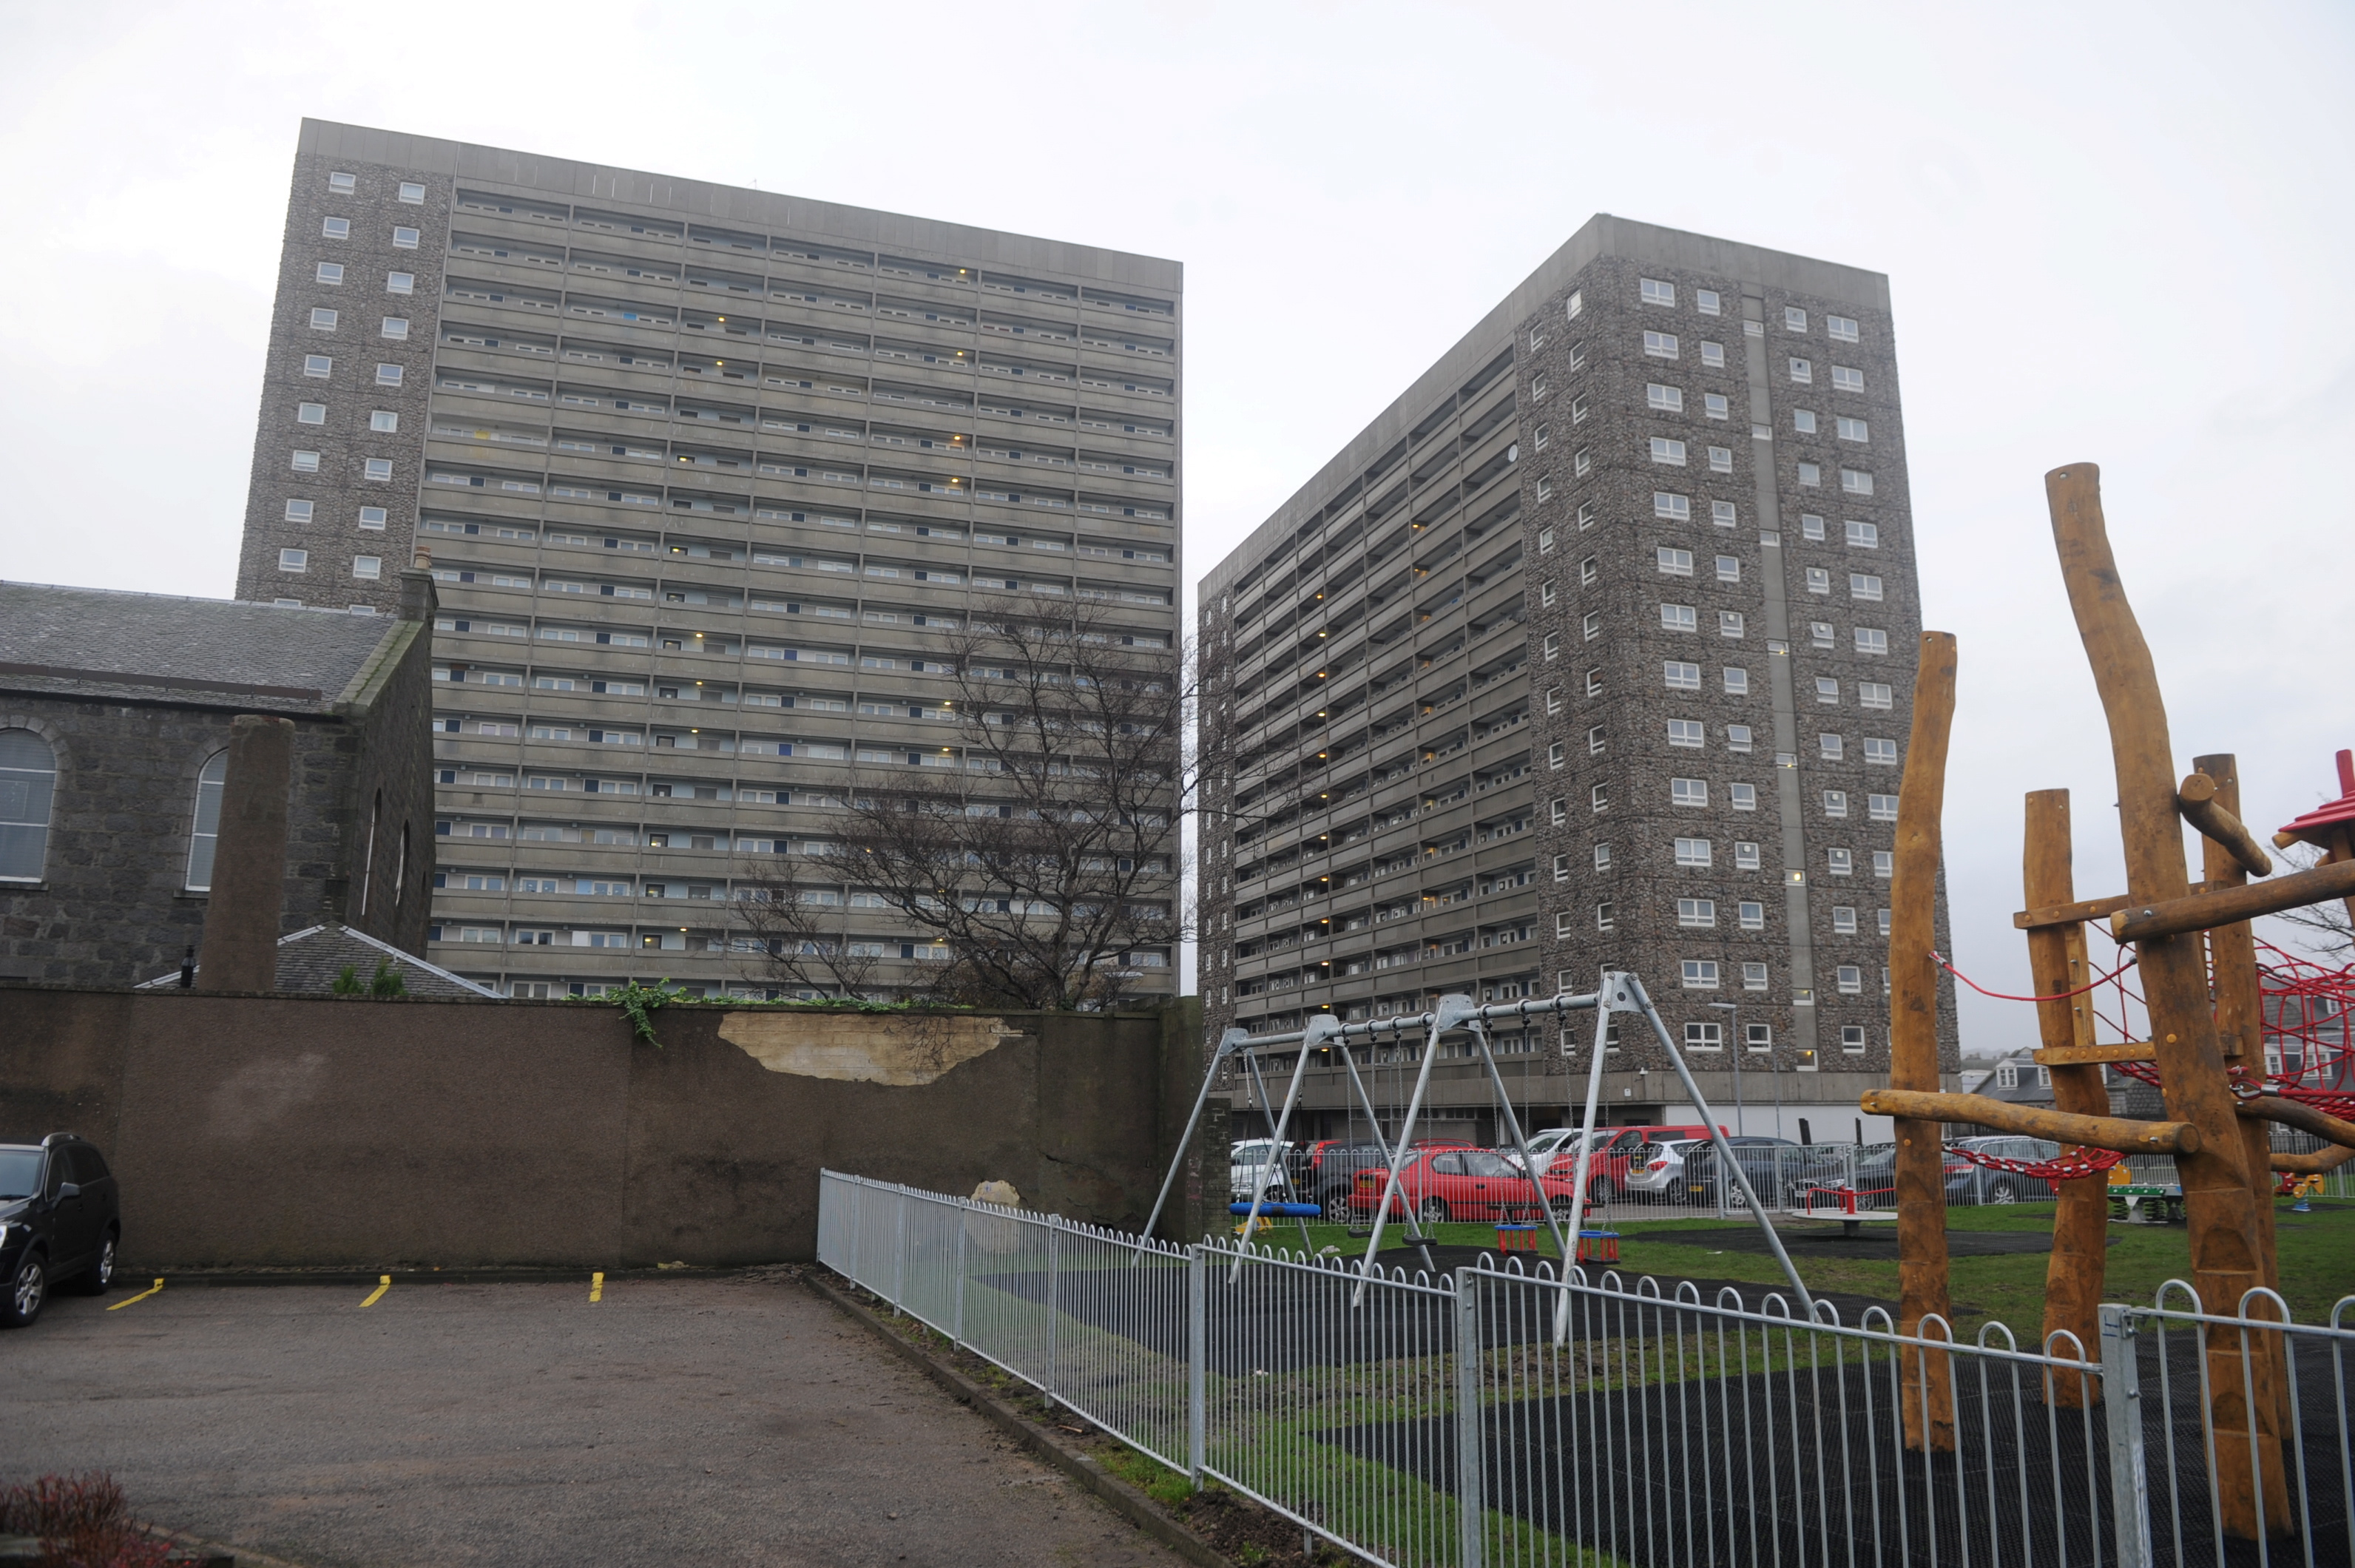 Hutcheon Court and  Greig Court were raided over Christmas Eve and Christmas Day